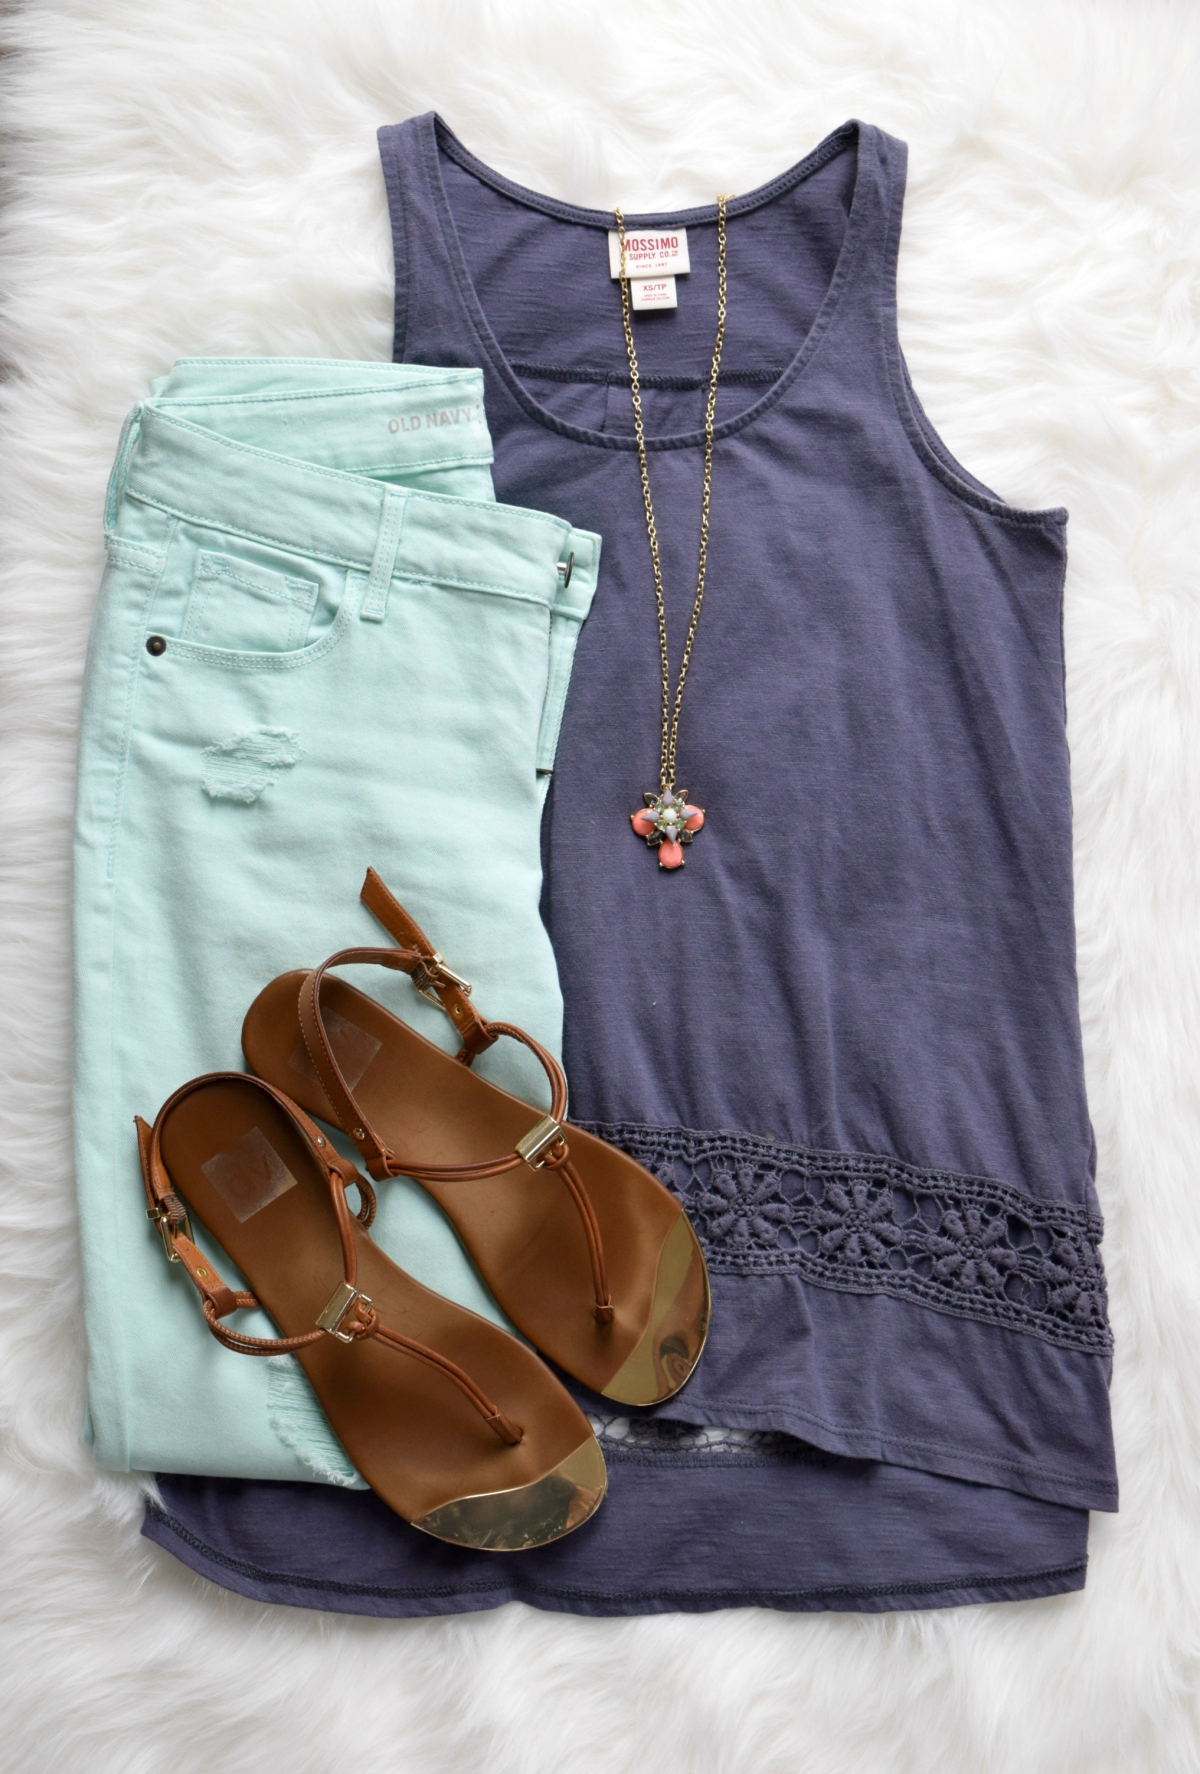 Mint skinny jeans and a gray-blue tank, pulled together with a pop of coral |www.pearlsandsportsbras.com|